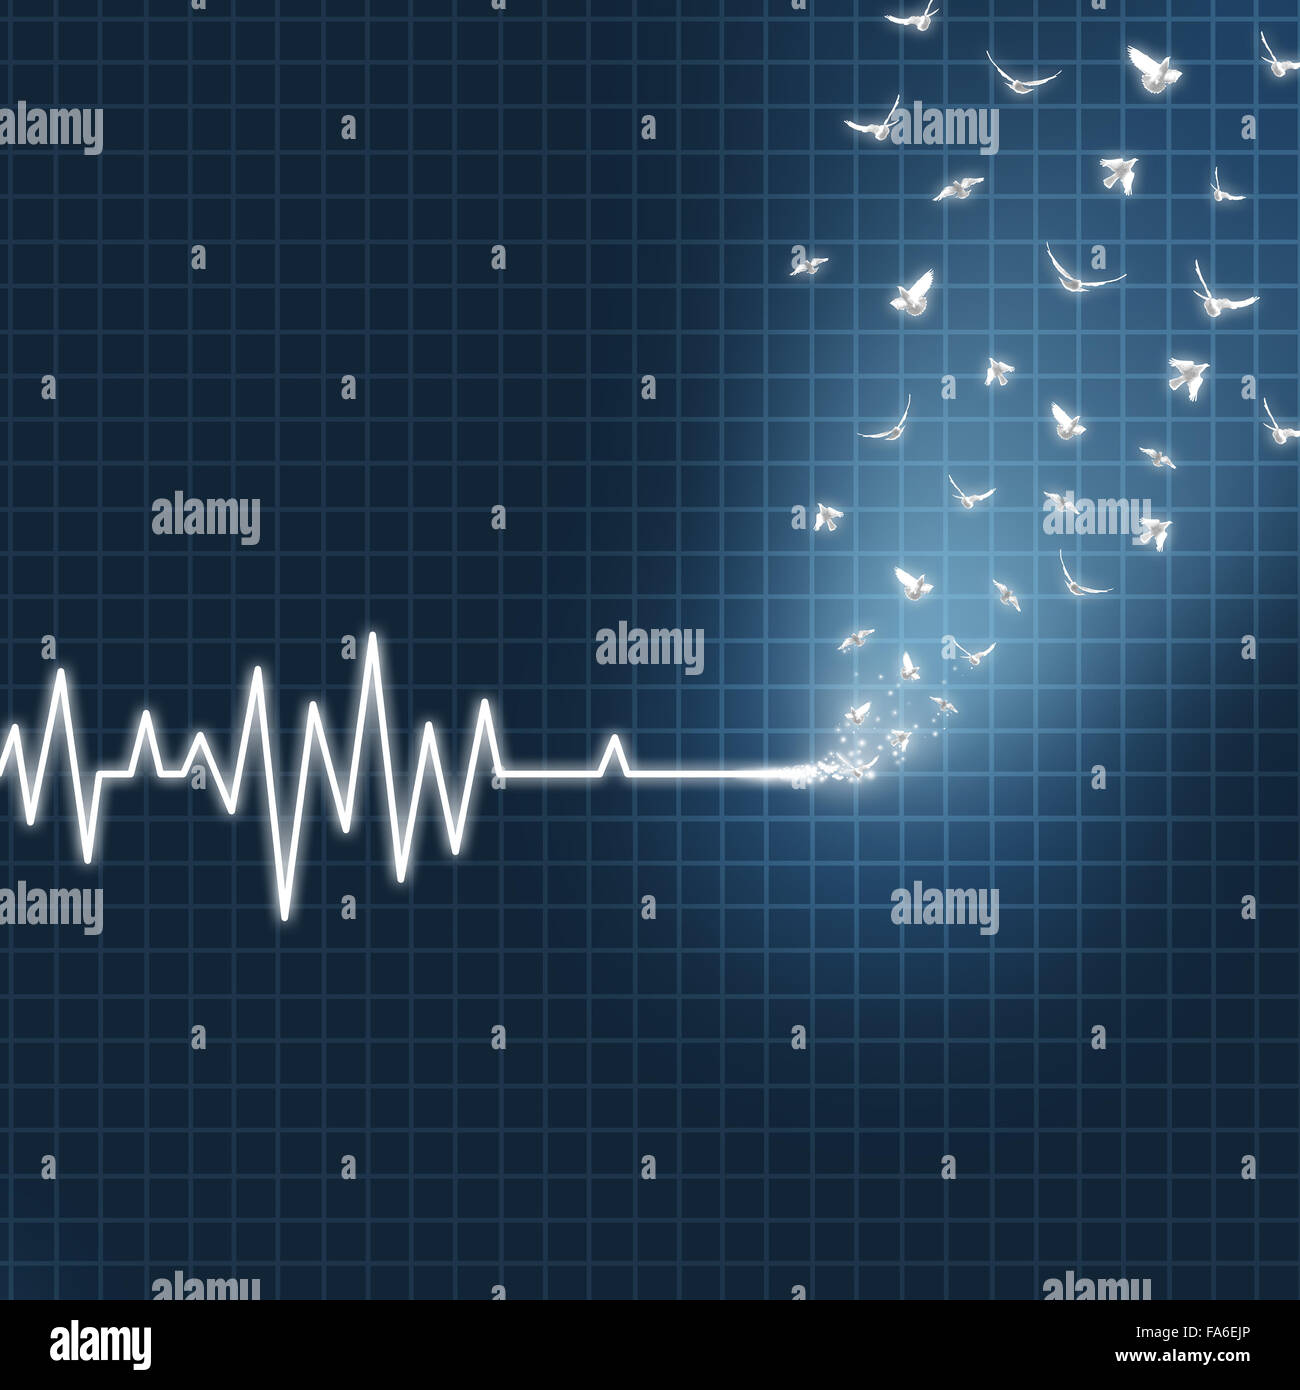 Afterlife concept as an ecg or ekg medical heart monitor lifeline  showing a flatline transforming into white doves - Stock Image